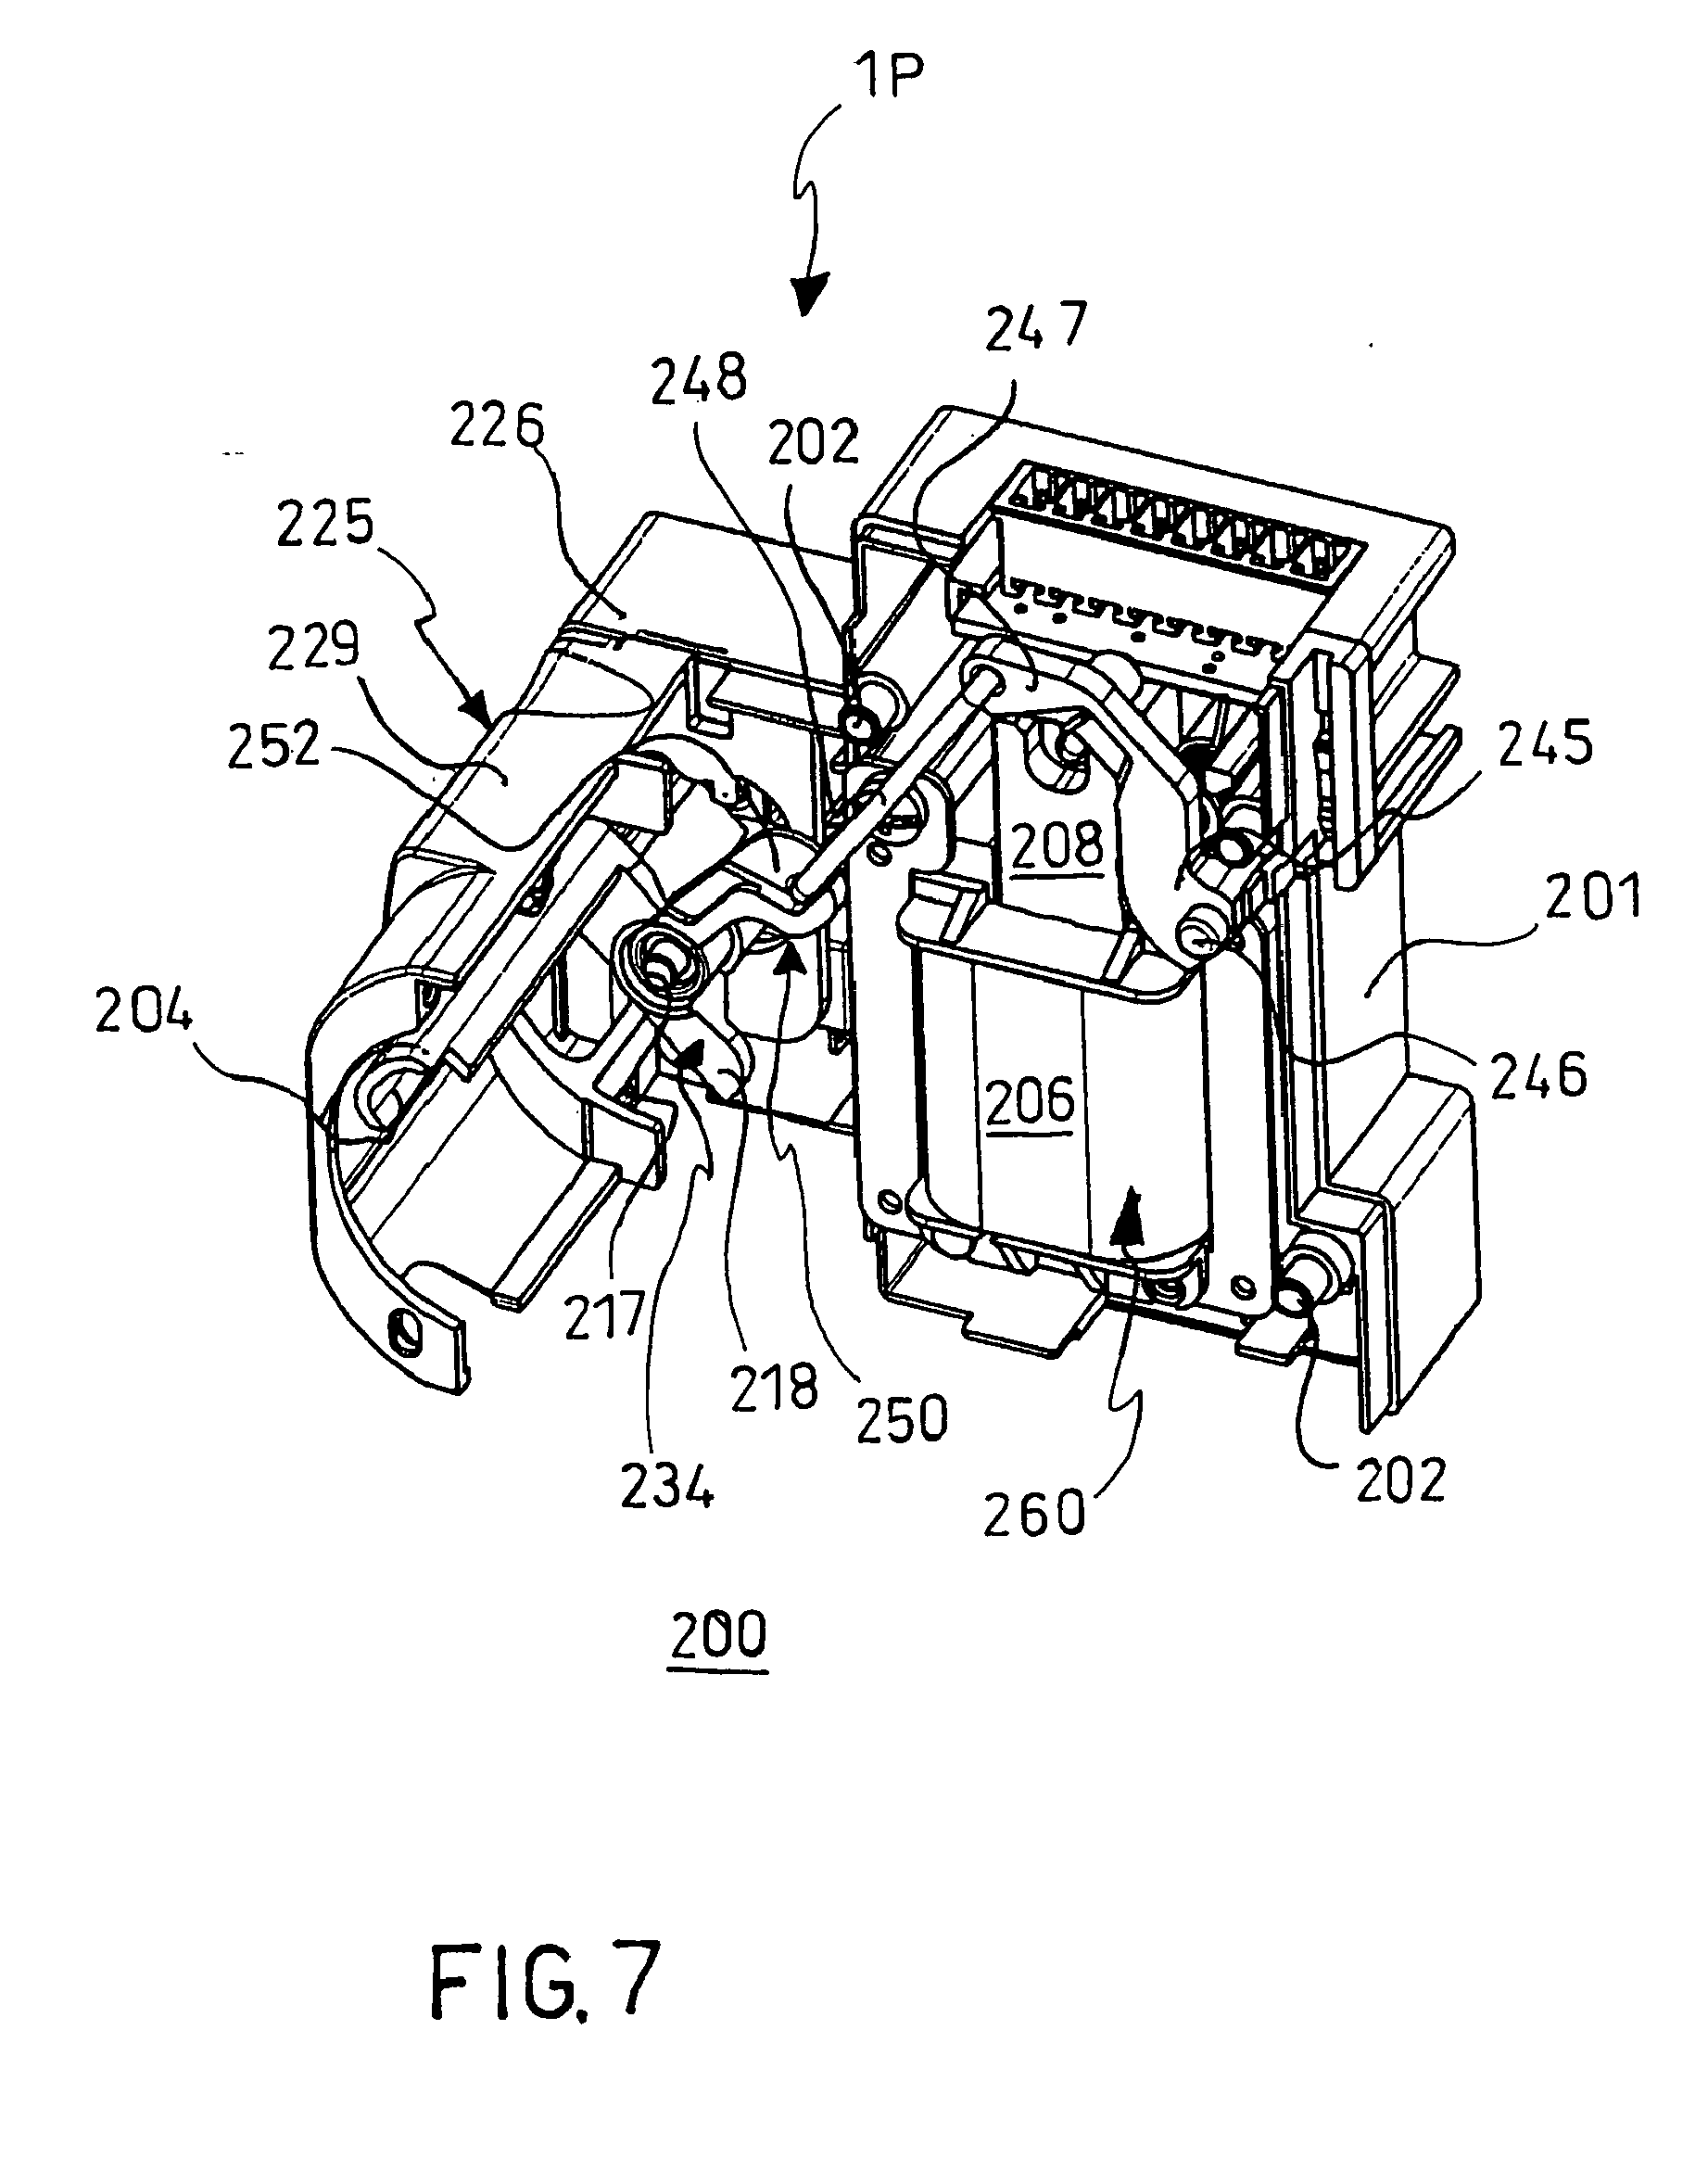 imgf0008 patent ep1950784a1 reset device for a safety electrical device,Hager Electrical Fuse Box